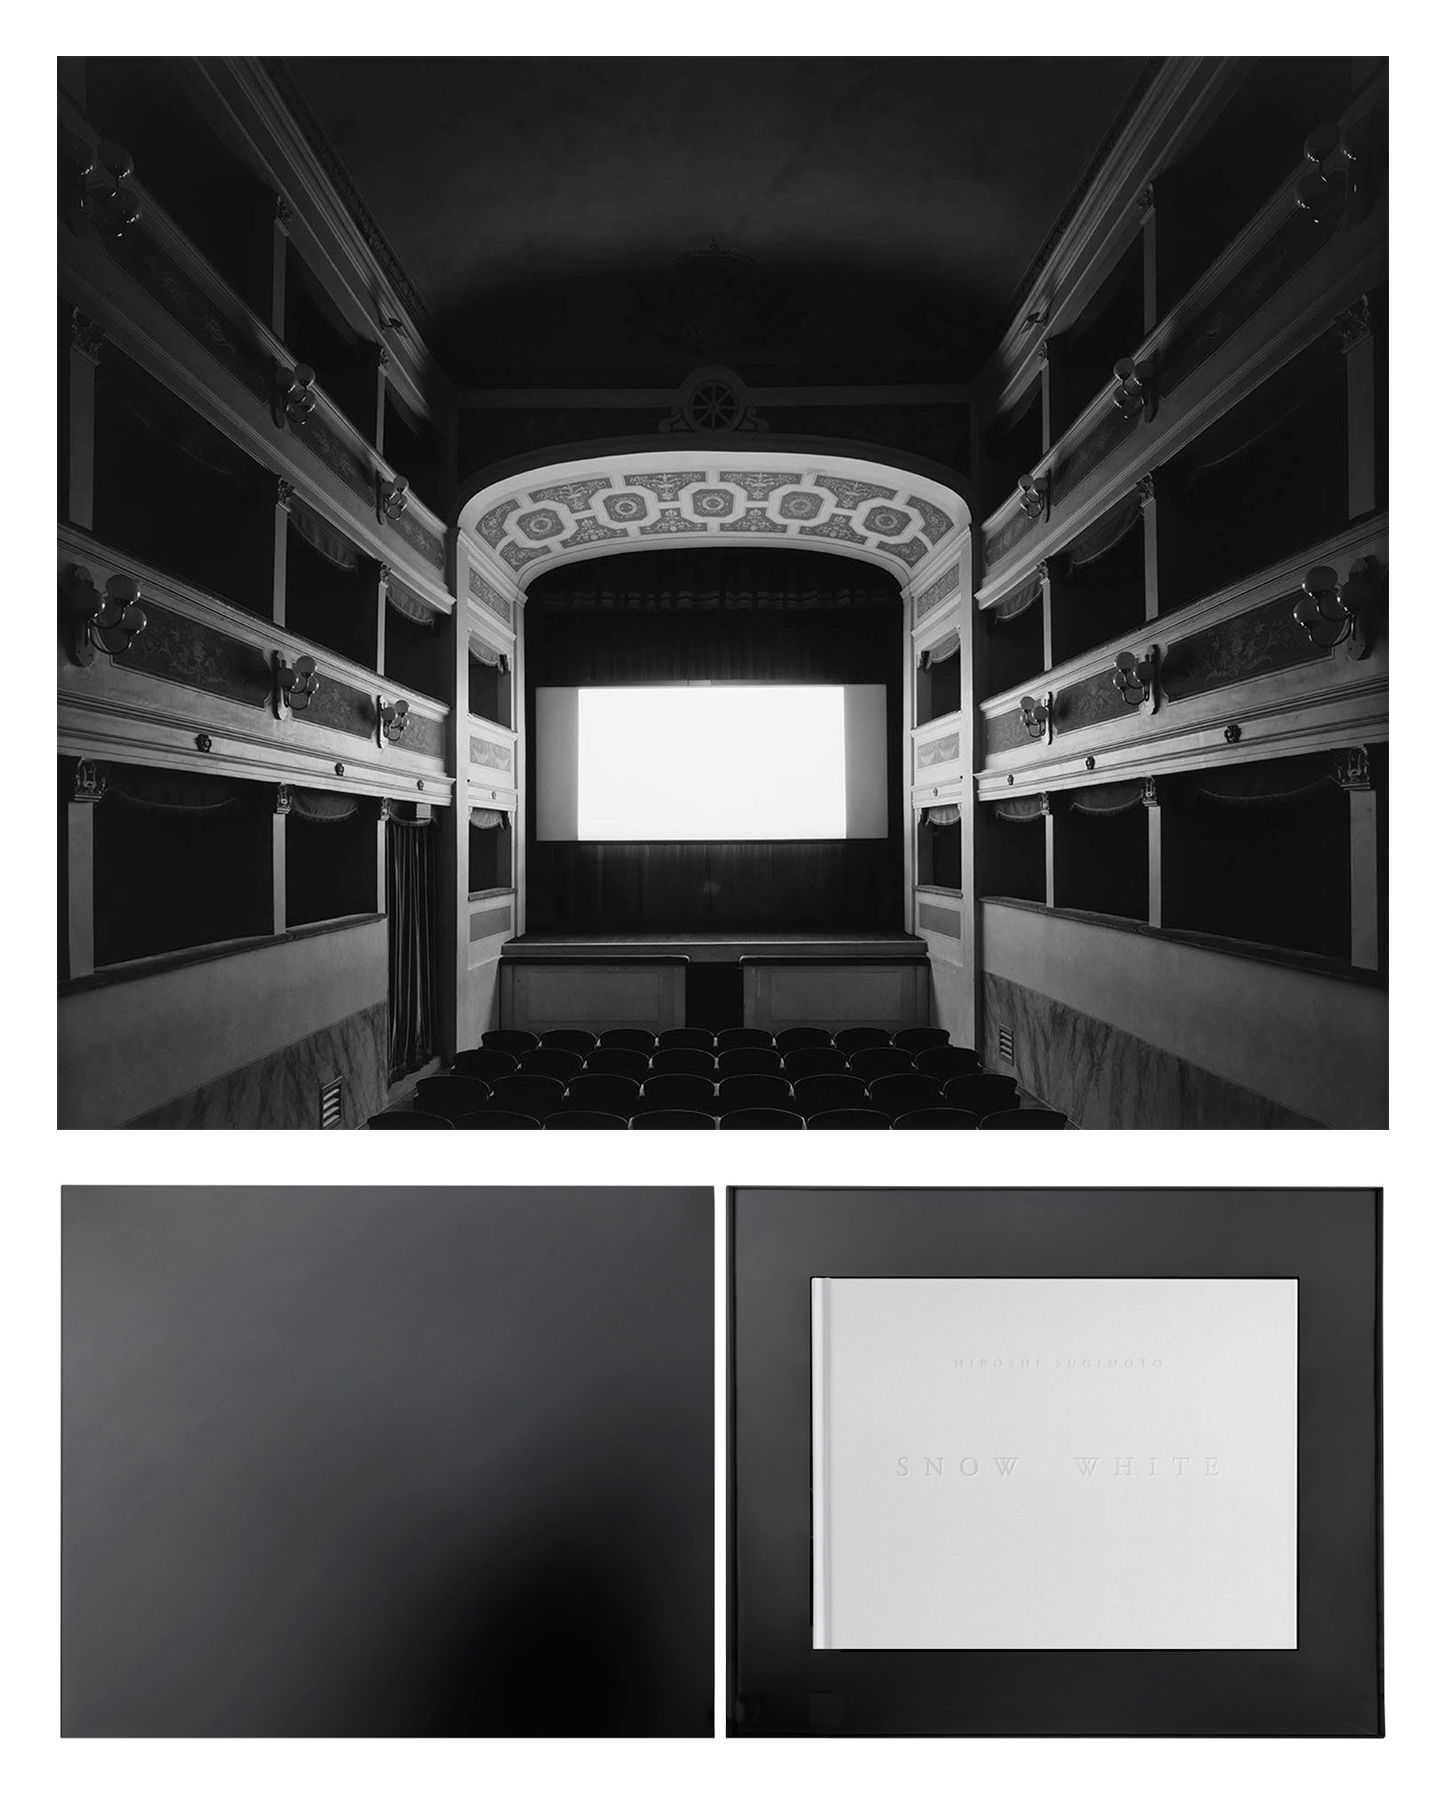 Hiroshi Sugimoto: Snow White, Collector's Limited Edition (with Print)